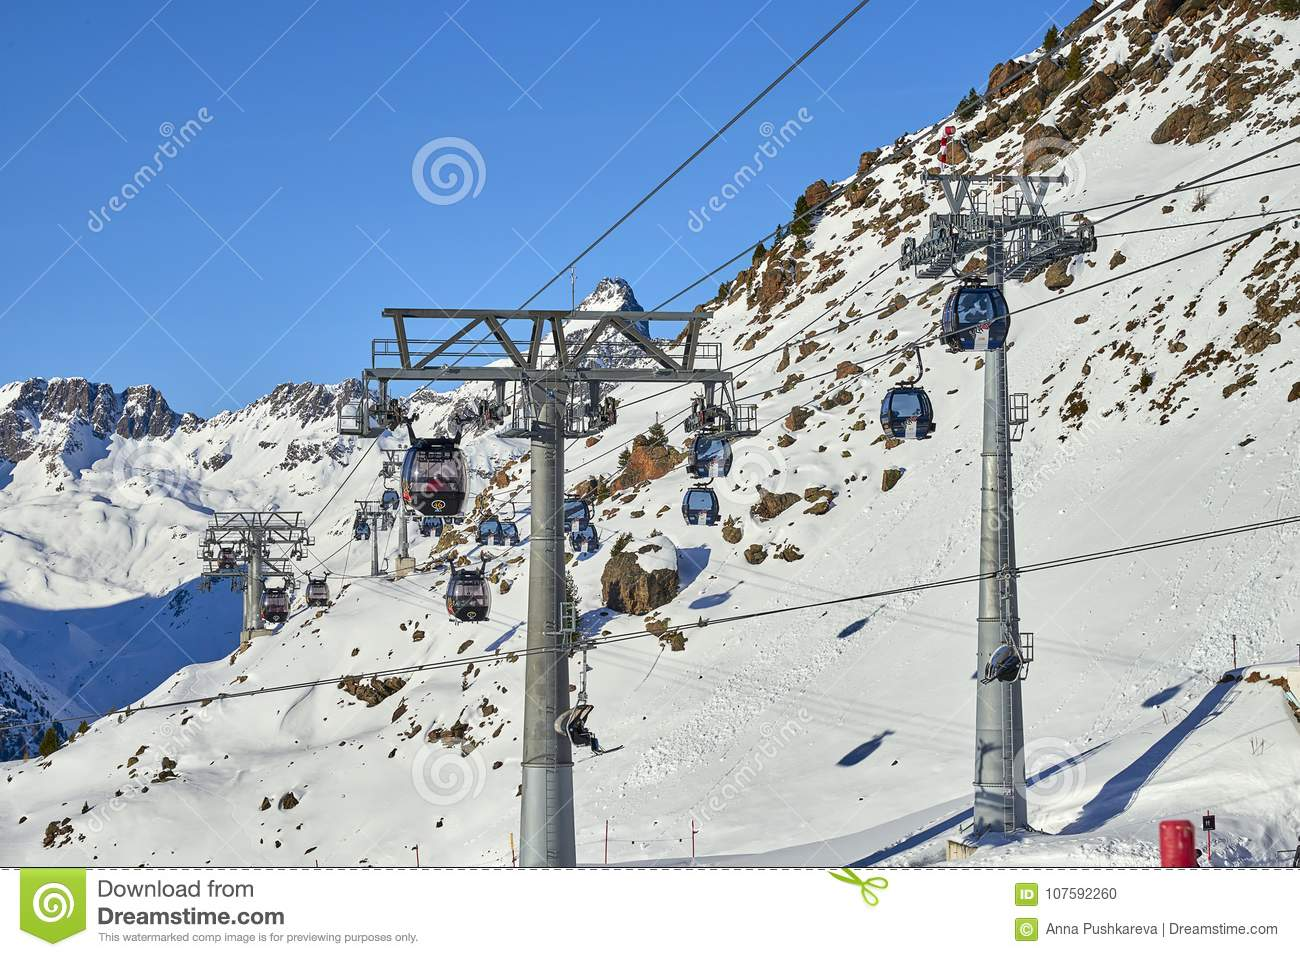 Two links of mono-cable detachable gondolas with high transport capacity lift skiers to the hill top in Tyrol Alps in sunny Decemb